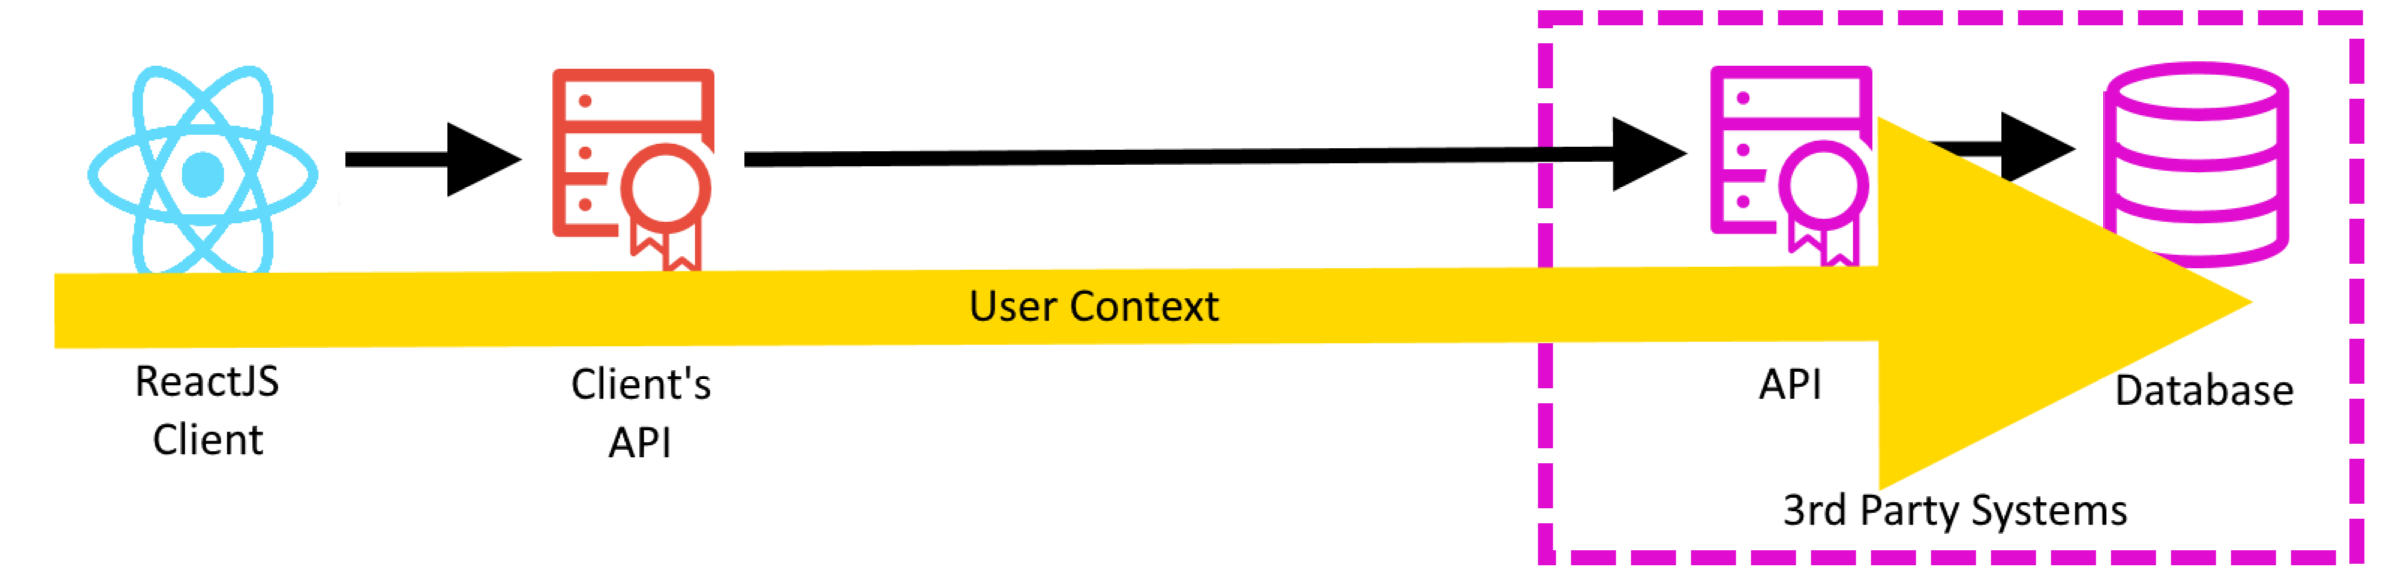 current architecture context.png